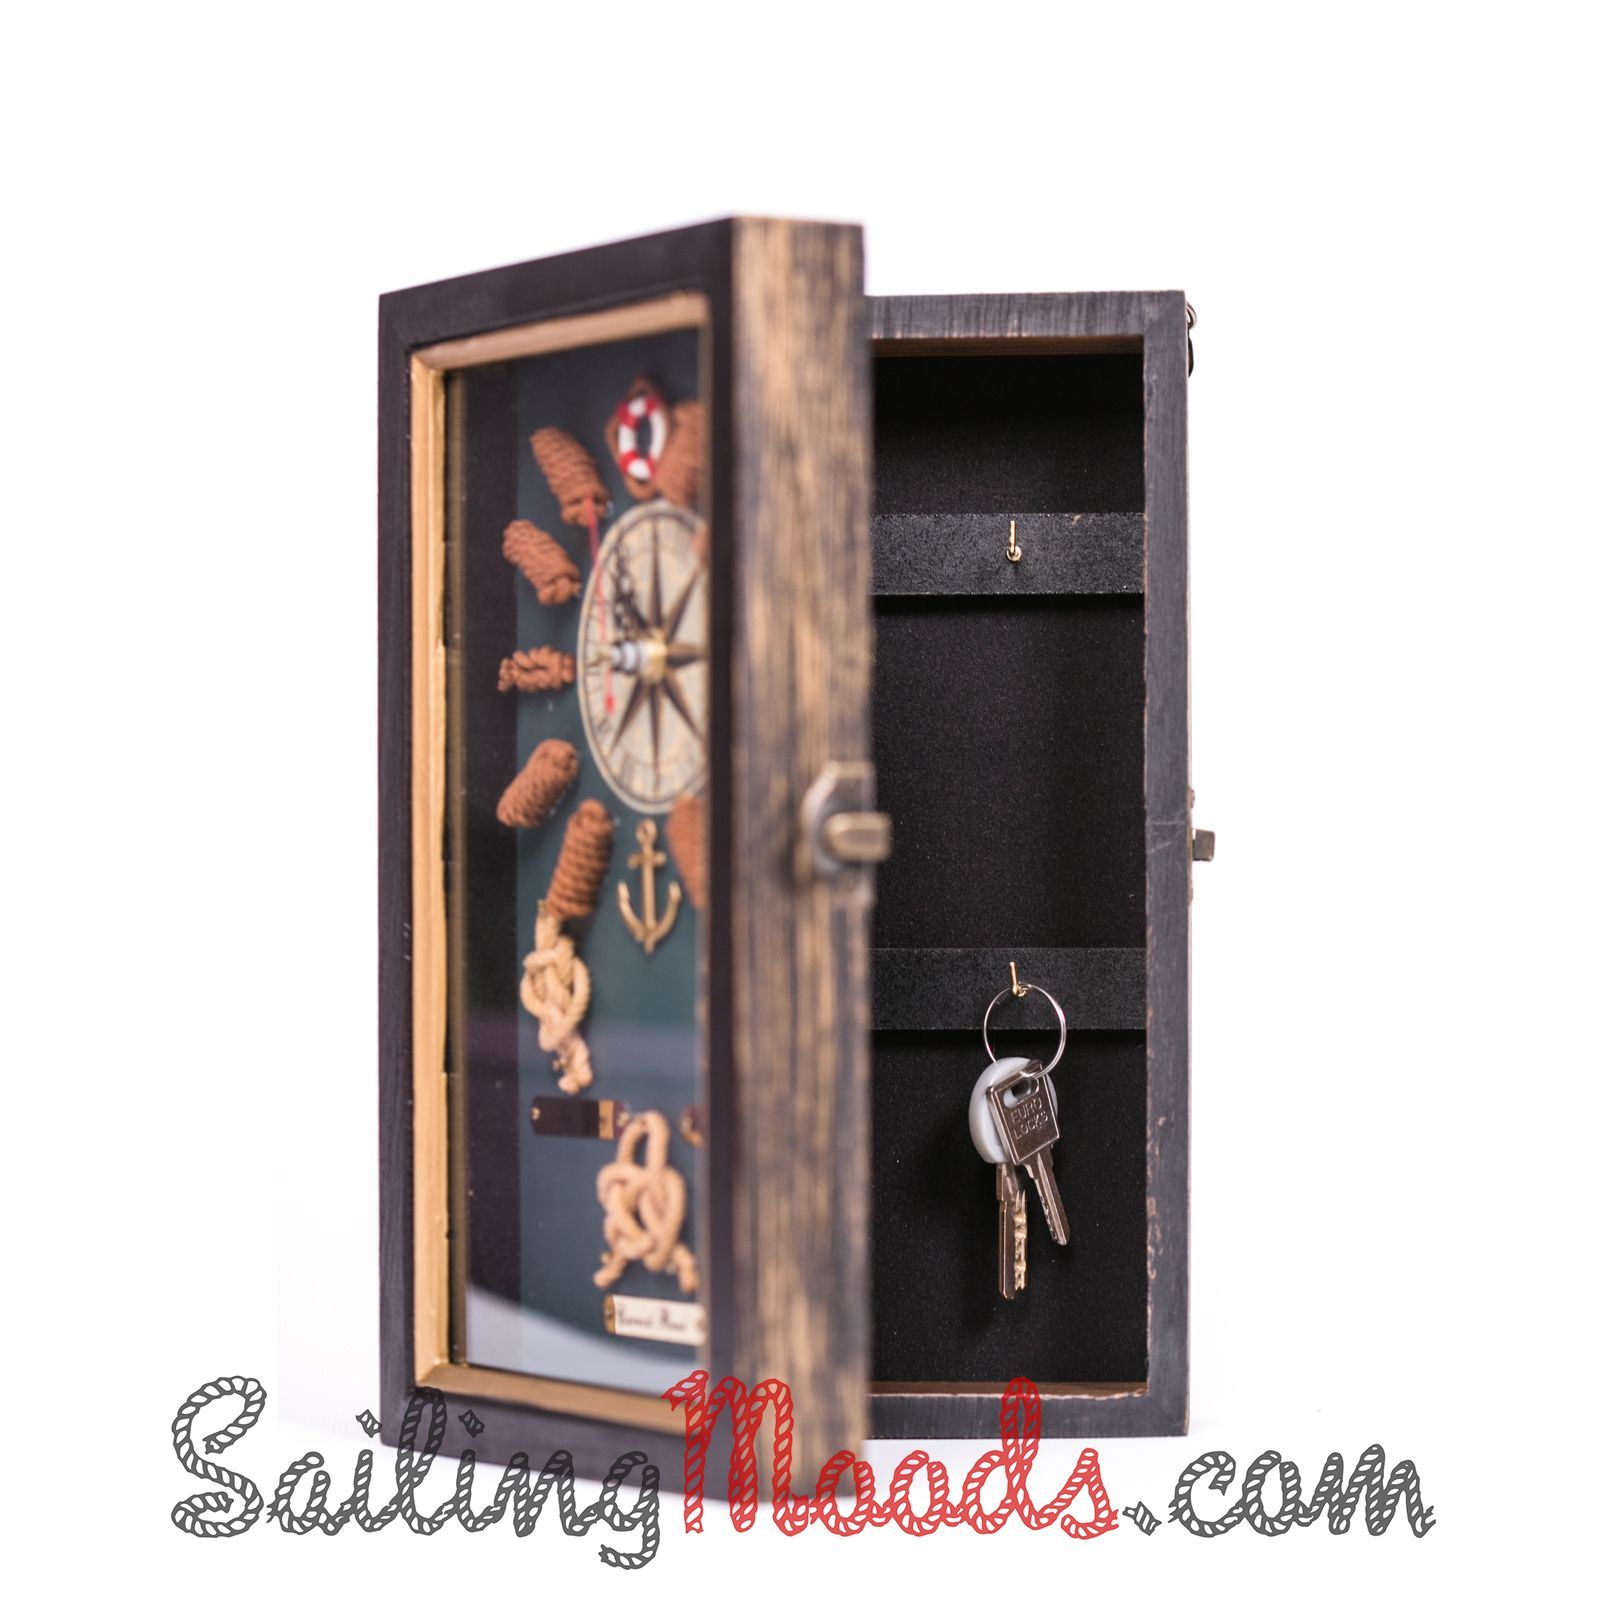 Nautical gifts for the home - Key Cabinet Knots Nautical Http Sailingmoods Com En